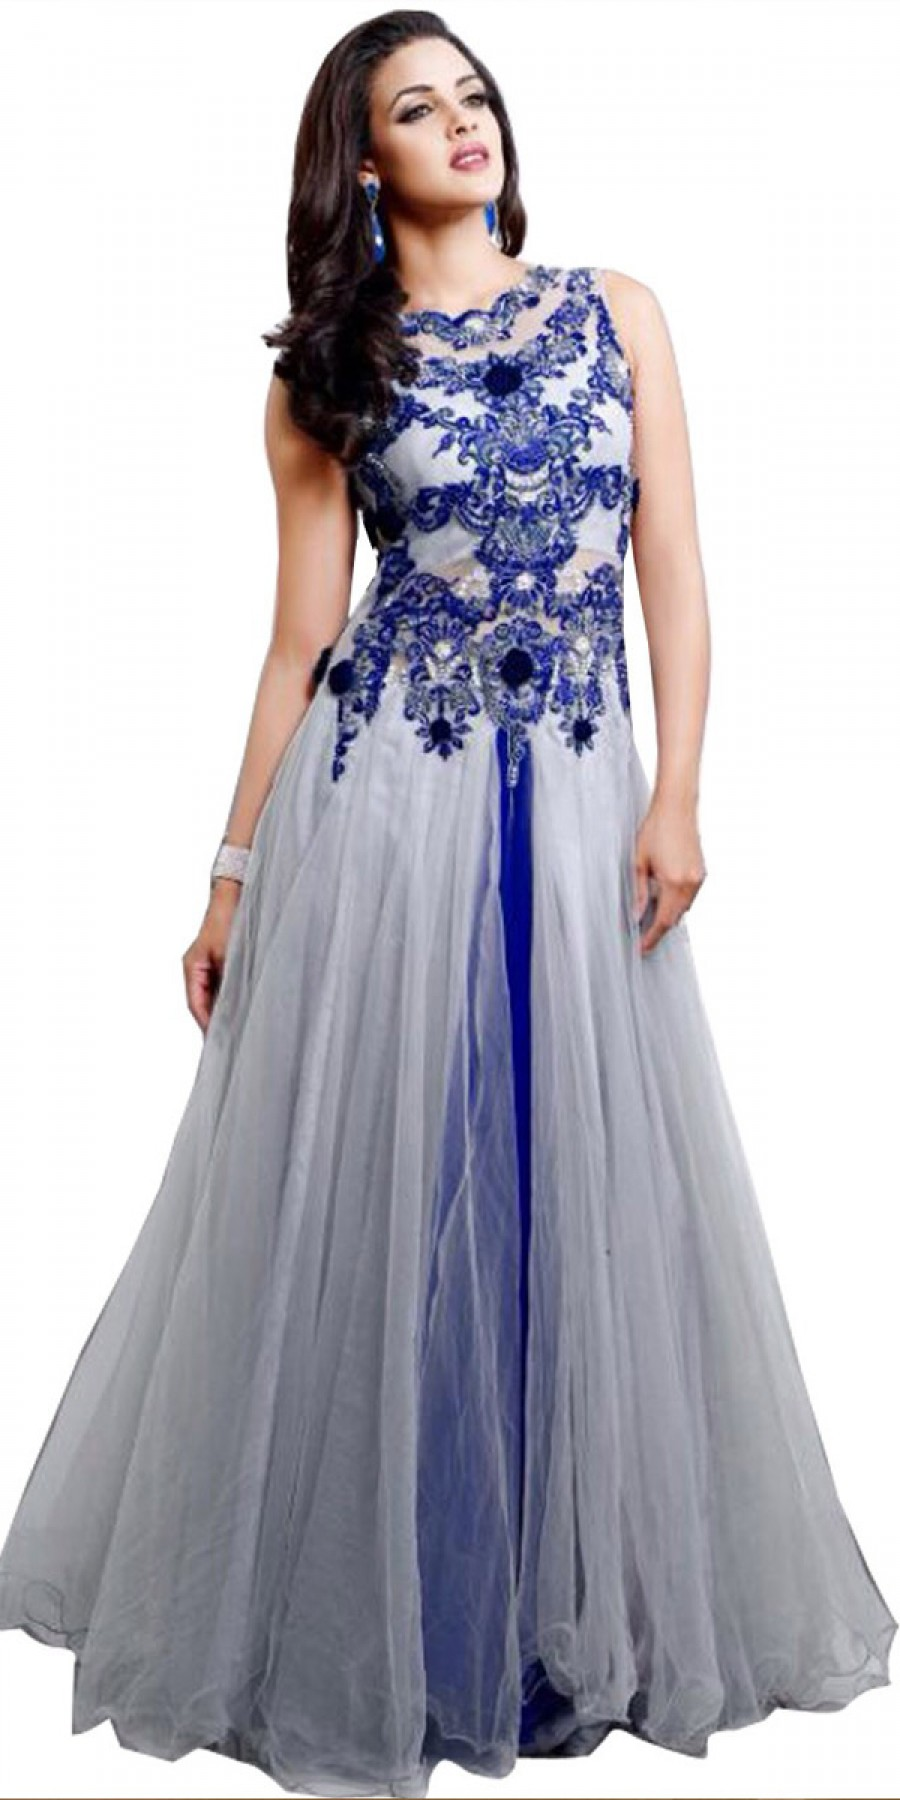 Buy Trendy Net Anarkali Suit In Off-White And Blue Color. Online